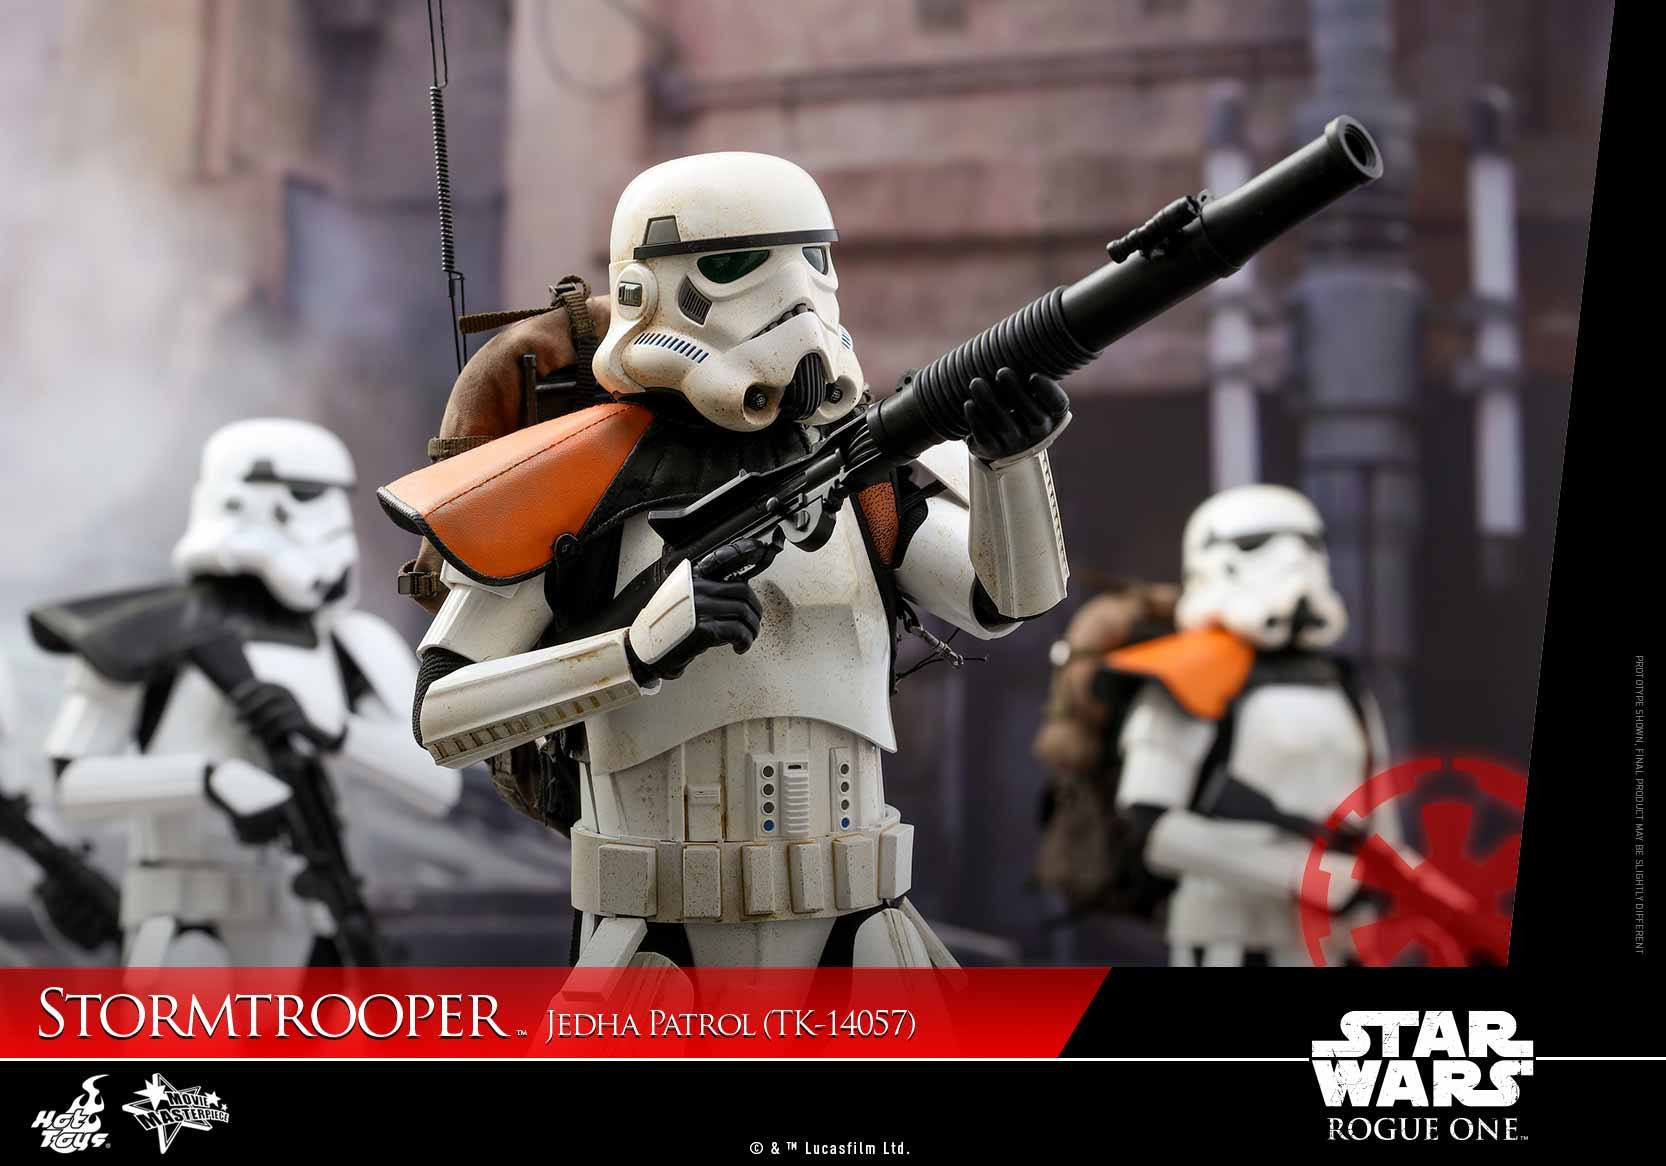 Hot Toys - MMS392 - Rogue One: A Star Wars Story - Stormtrooper Jedha Patrol (TK-14057) - Marvelous Toys - 4